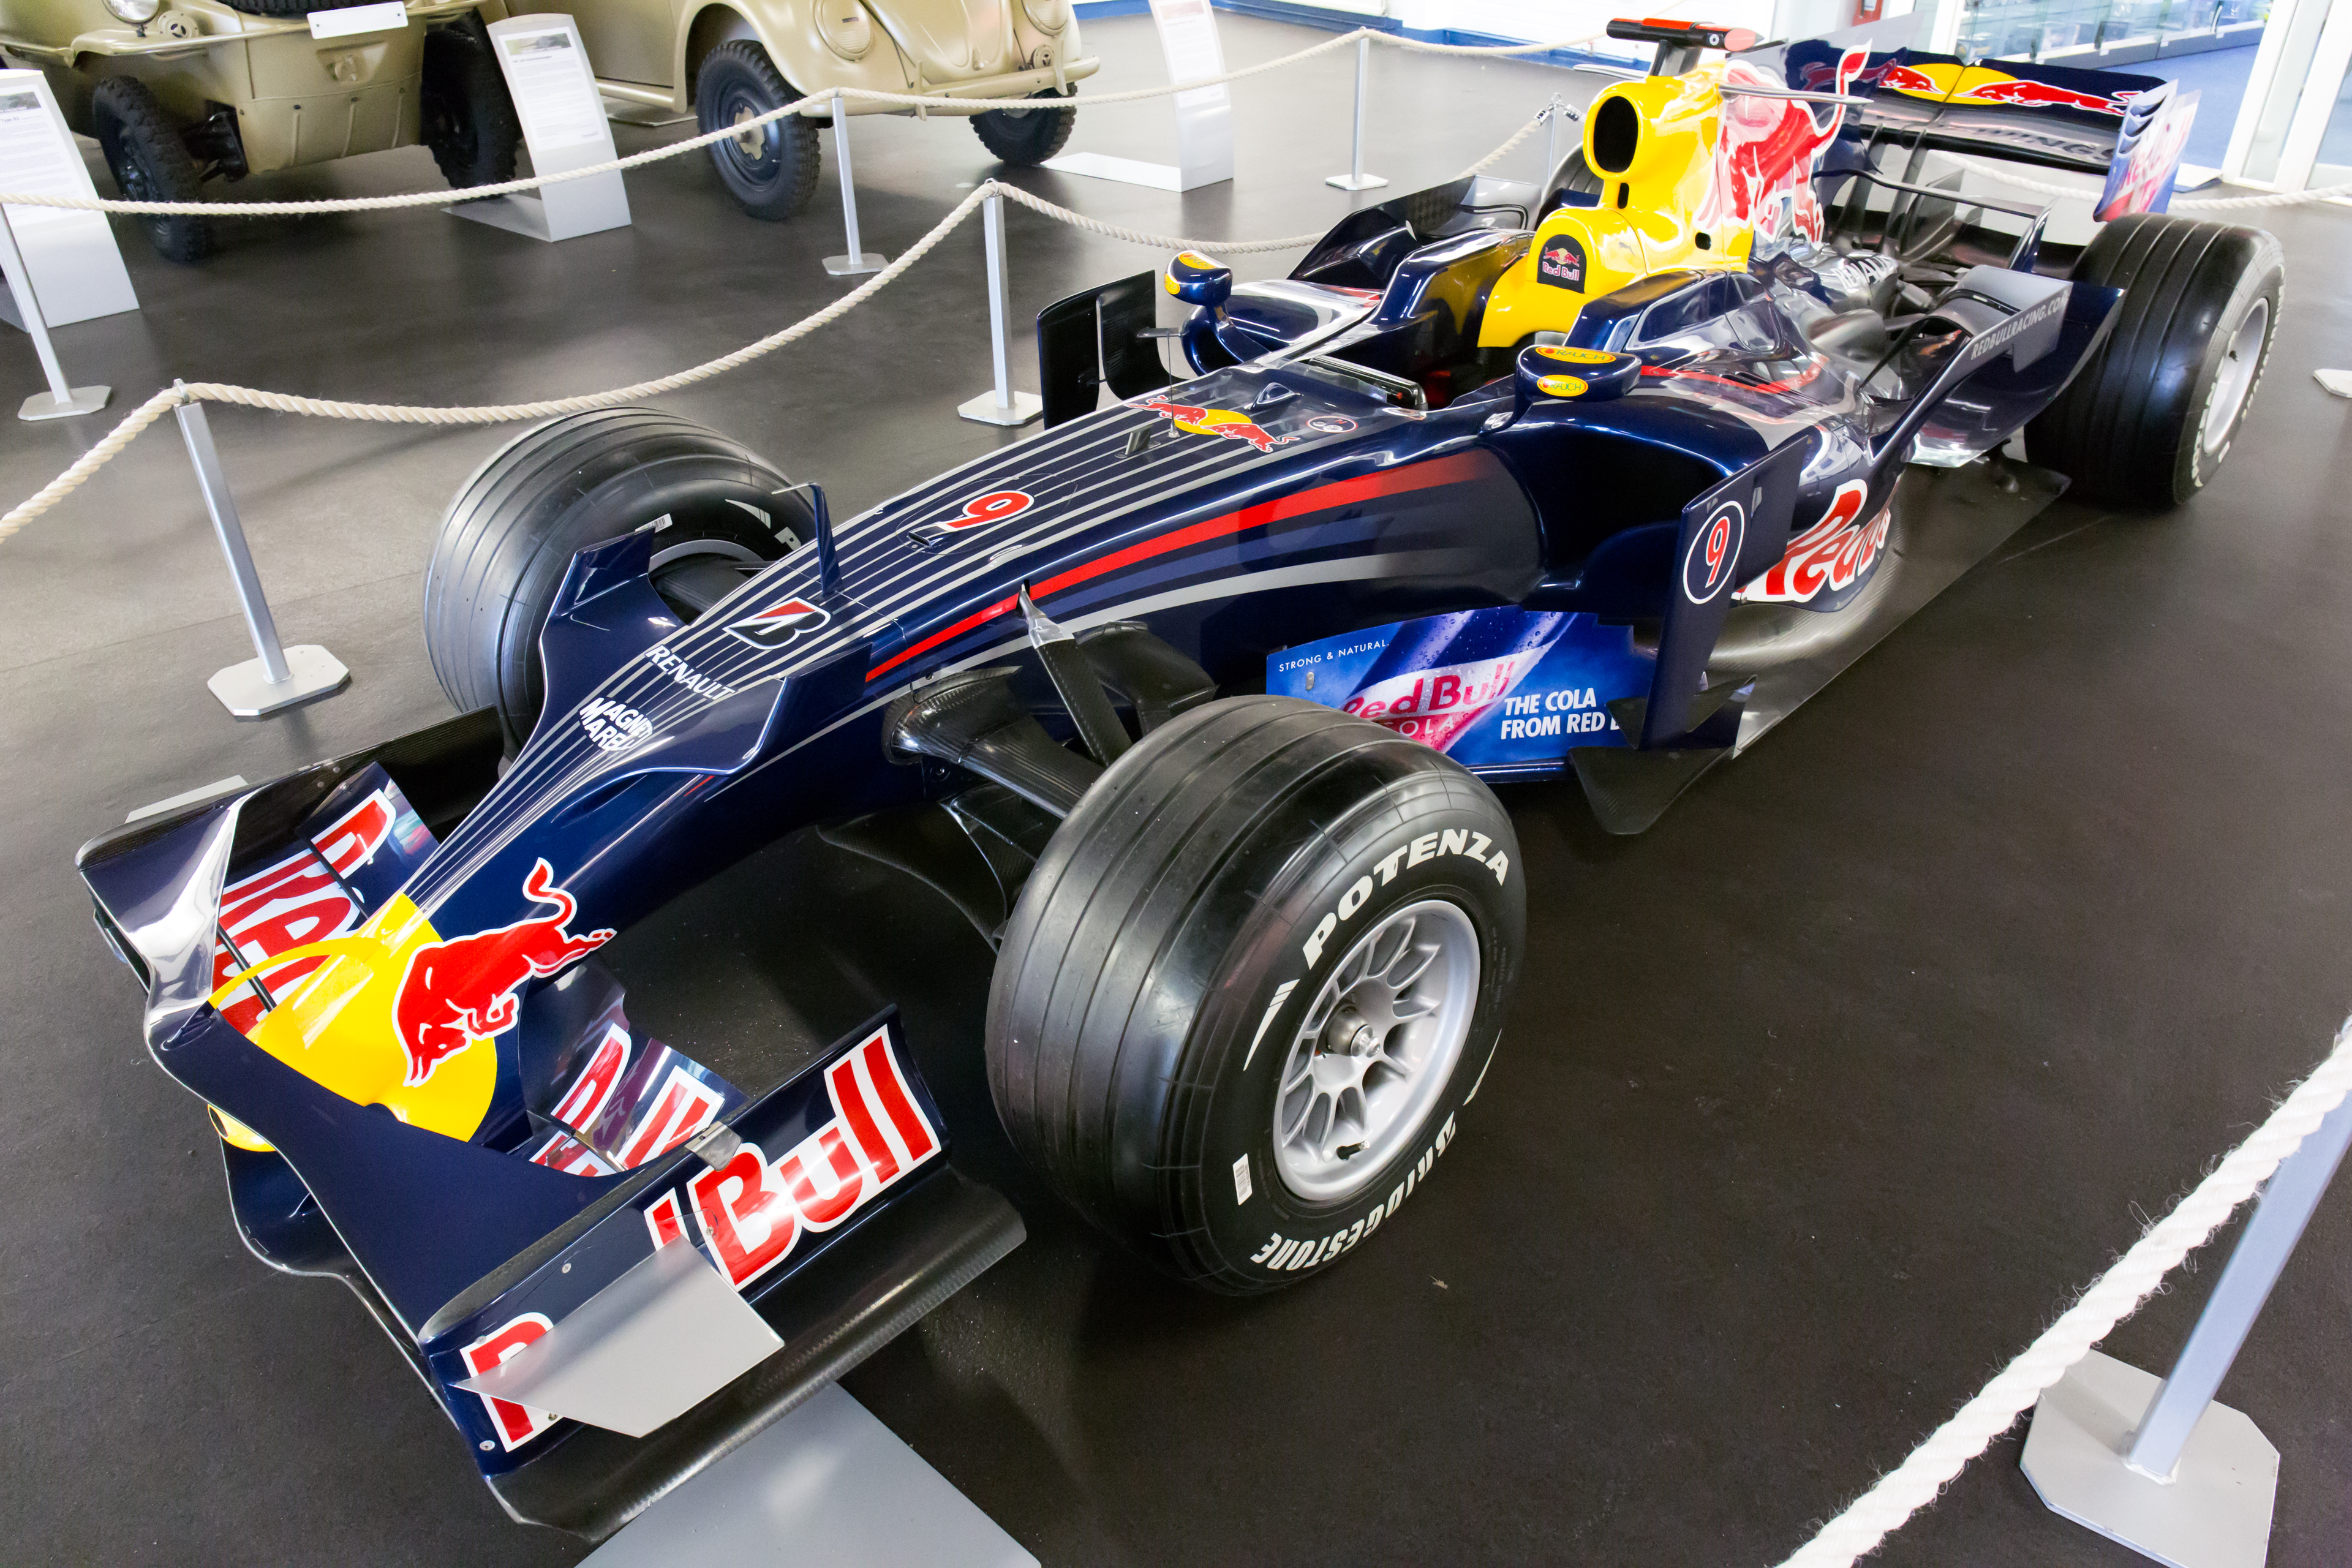 red bull wikipedia autos post. Black Bedroom Furniture Sets. Home Design Ideas